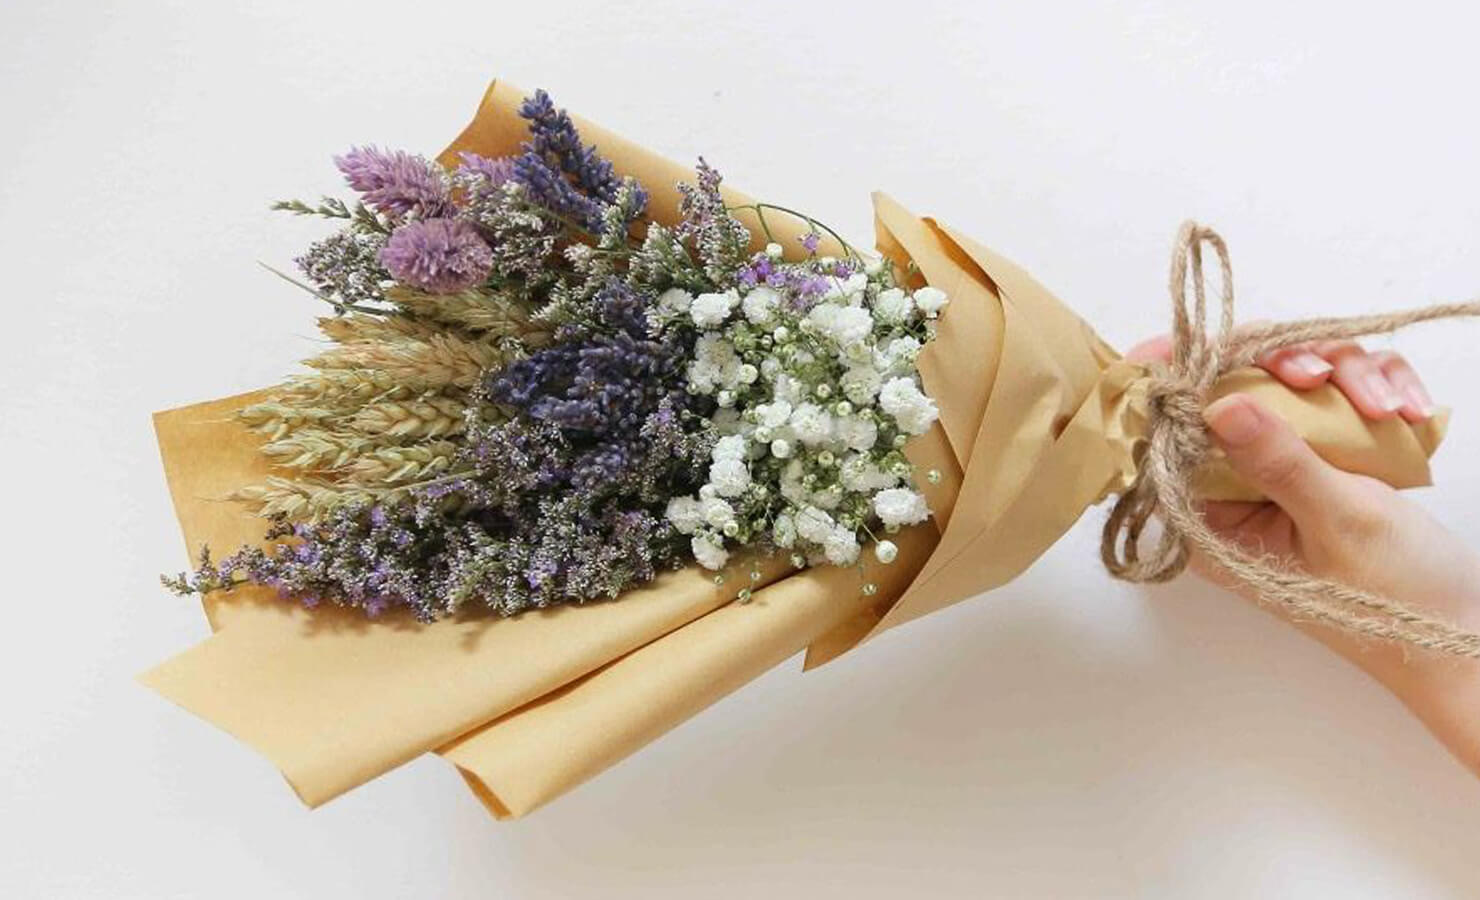 diy-dry-flower-bouquet-hand-bouquet